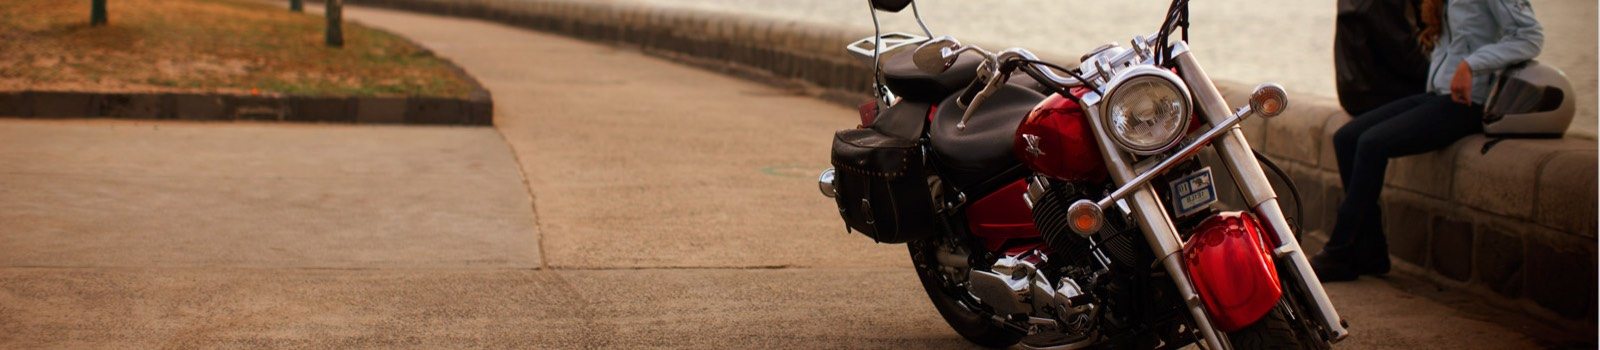 Motorcycle Insurance Cover   AAMI